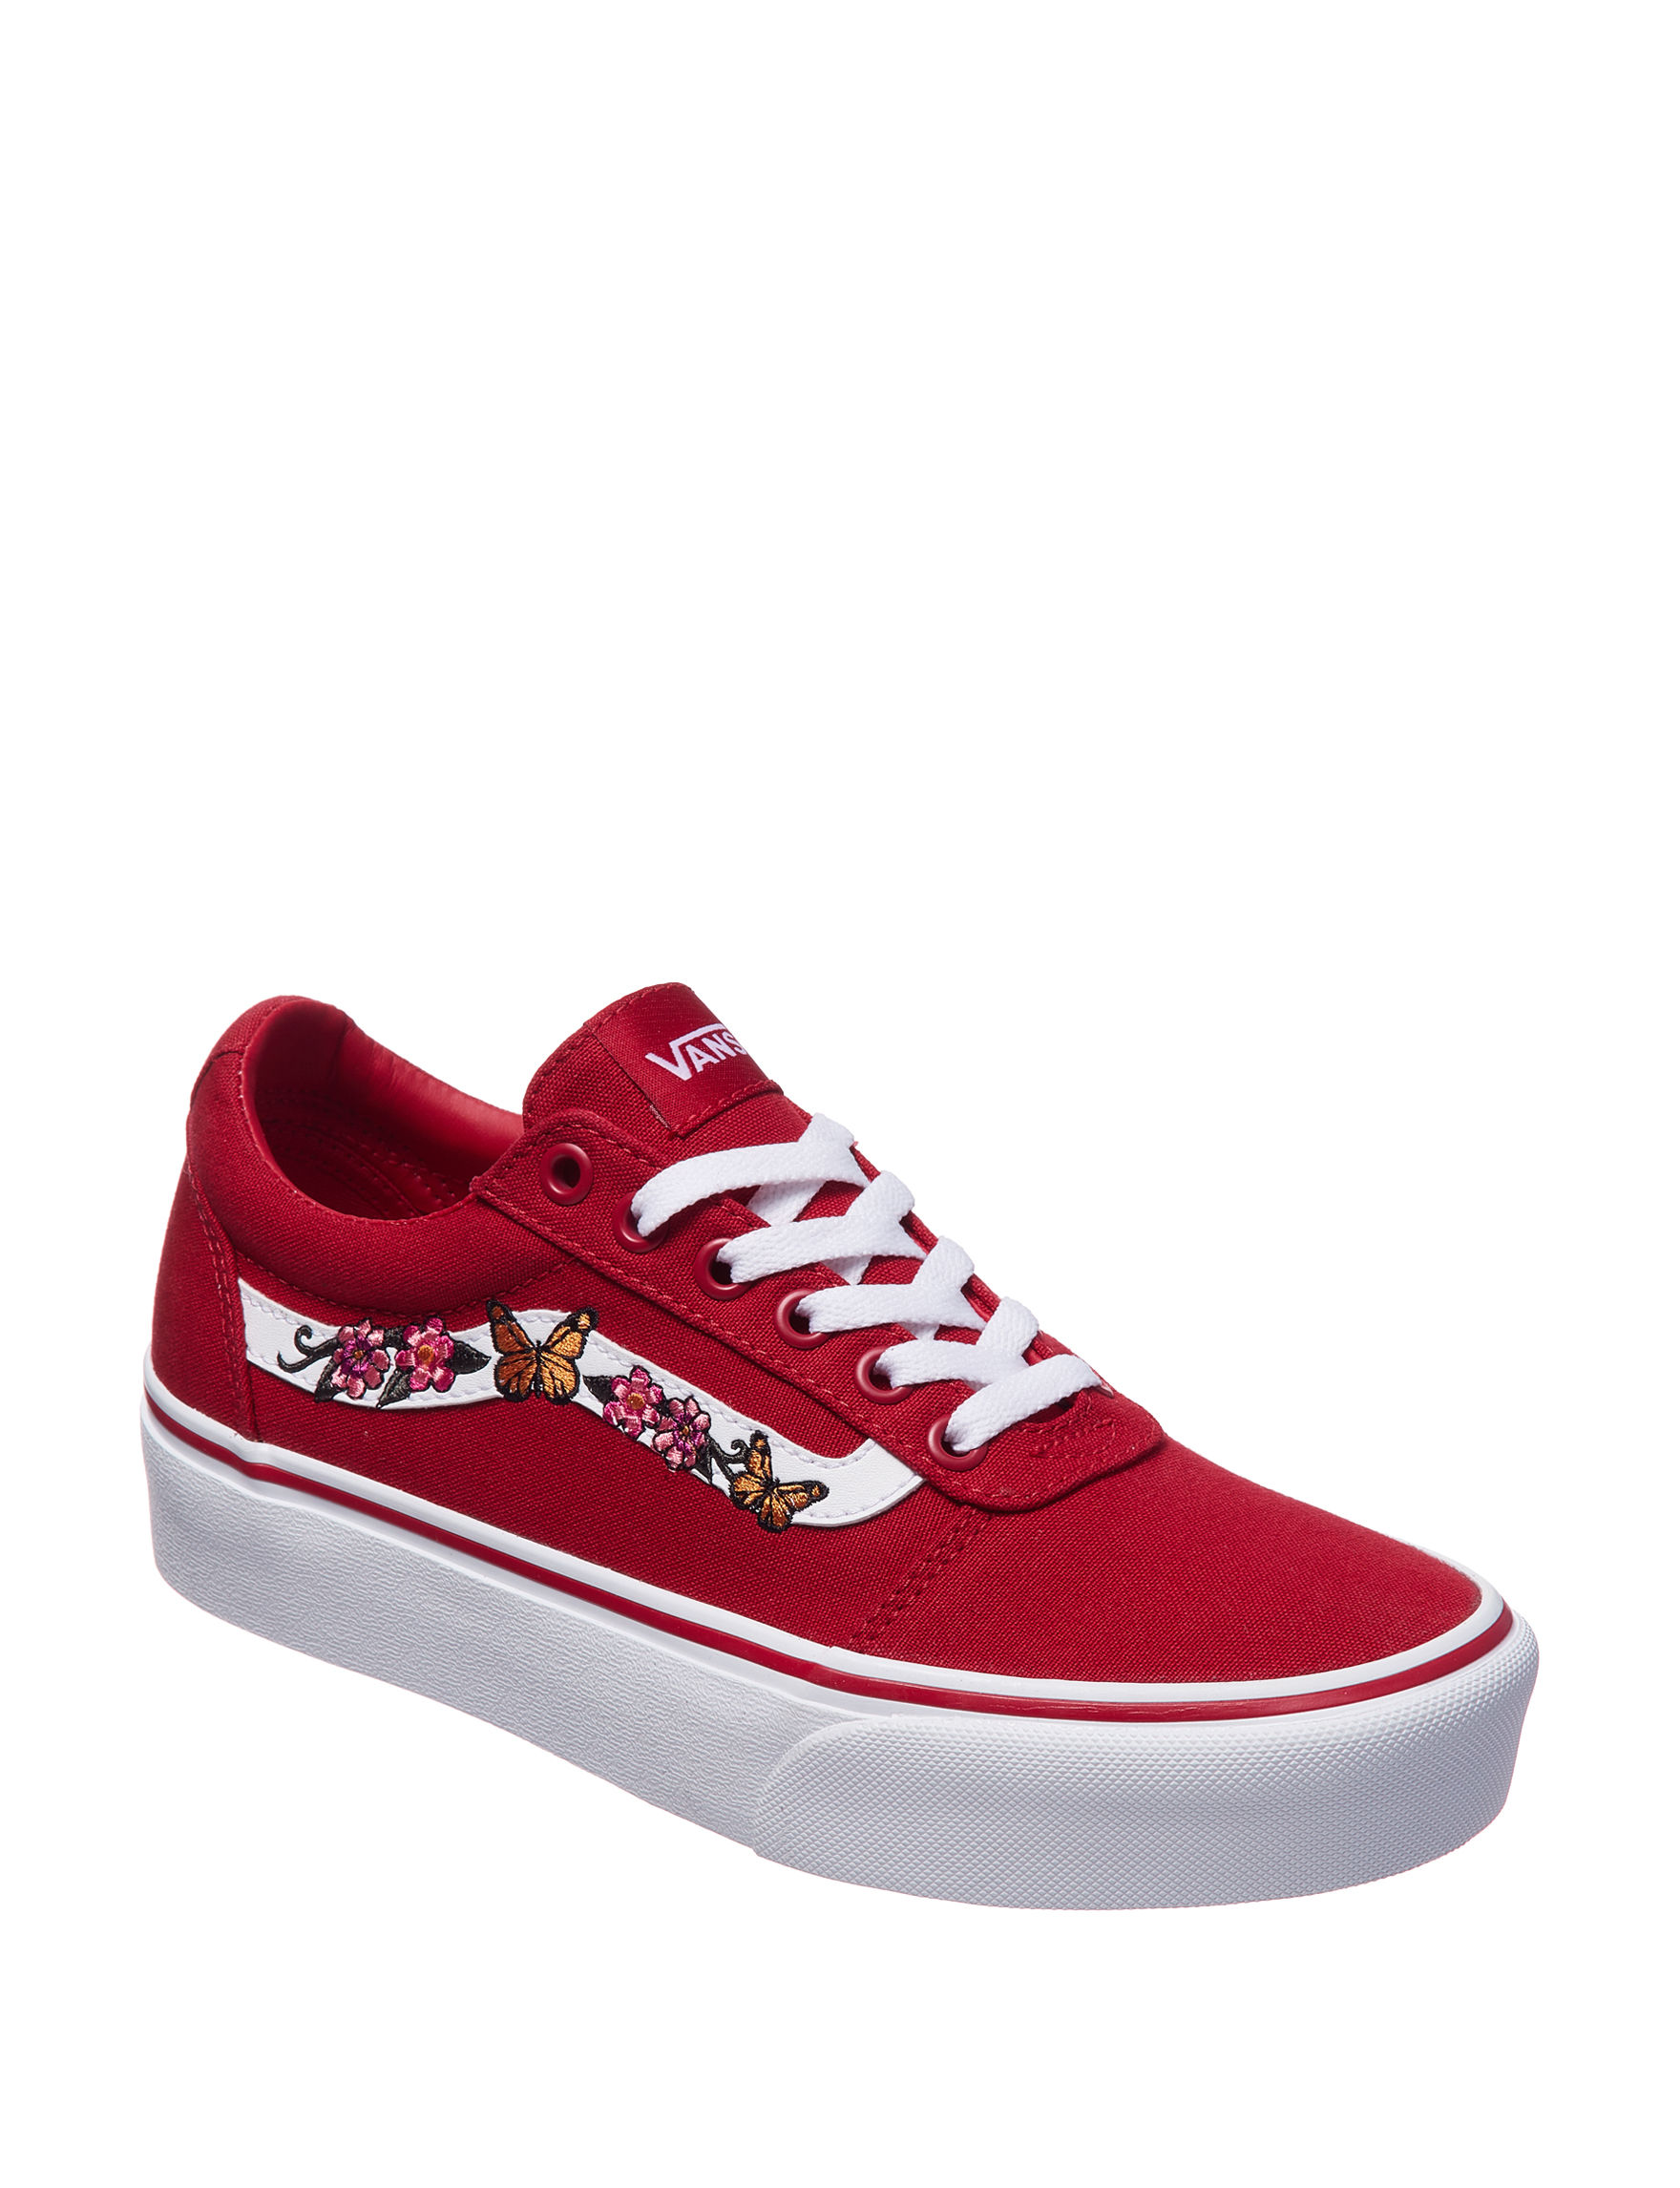 c782b3ca1512e8 Vans Women's Ward Floral Butterfly Platform Fashion Sneakers | Stage ...